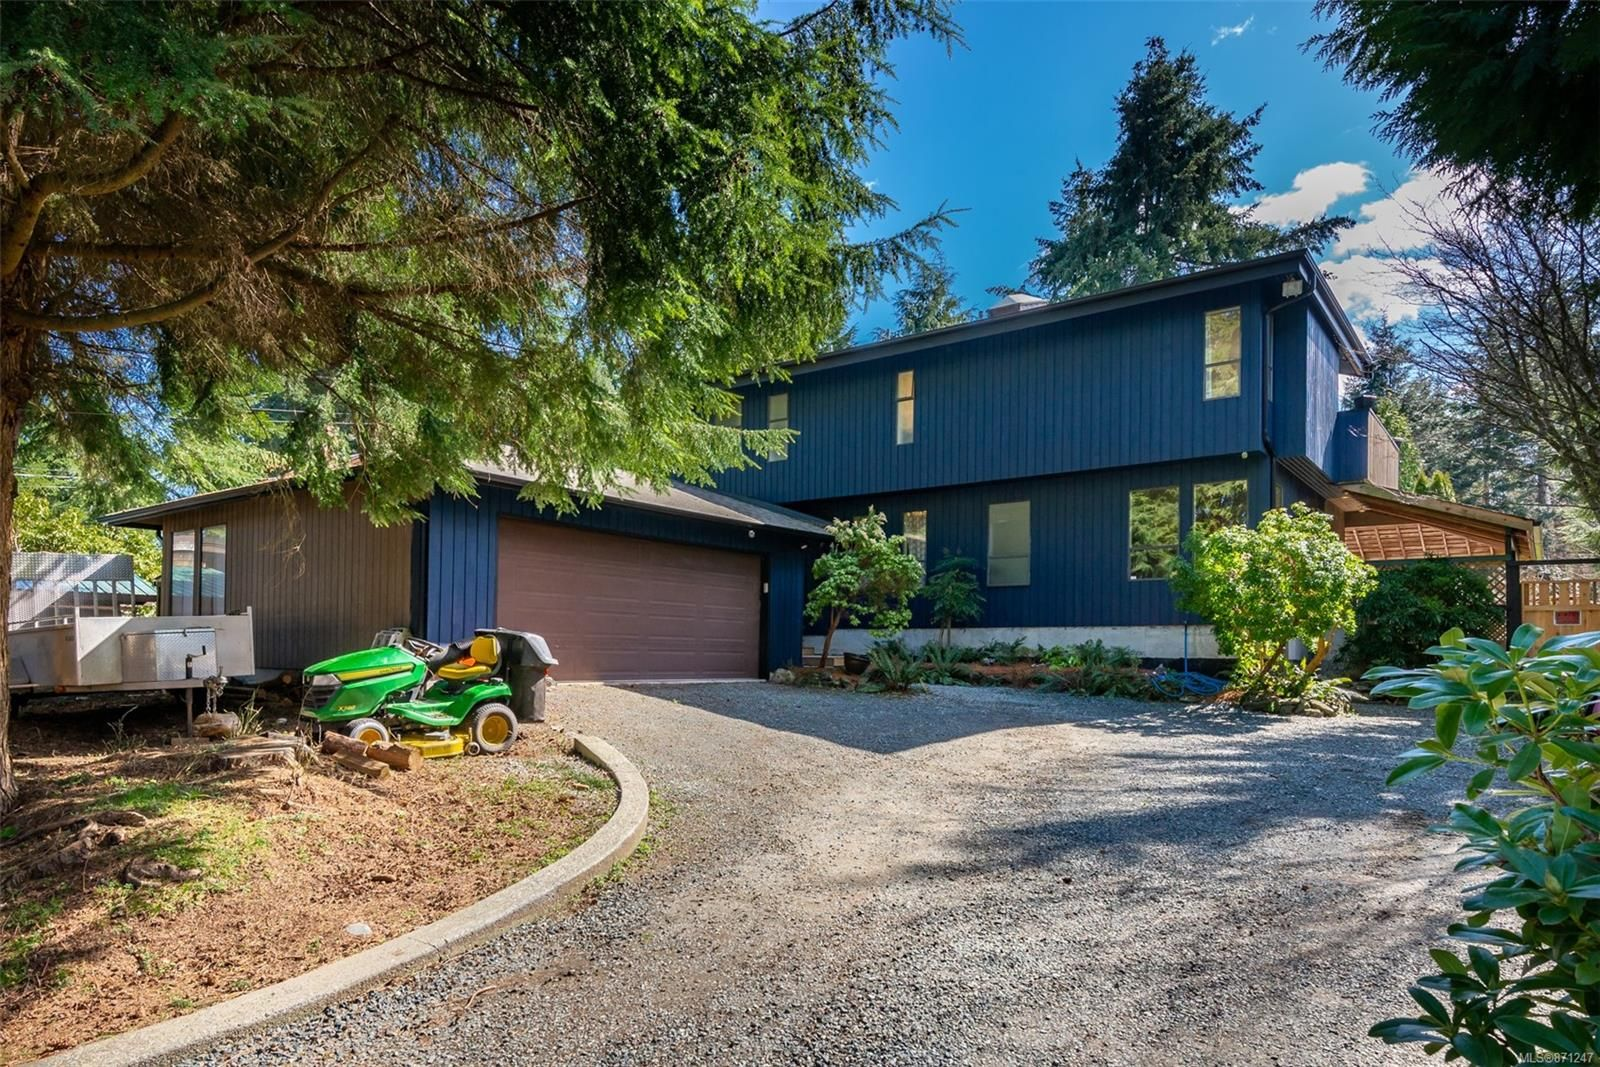 Main Photo: 211 Finch Rd in : CR Campbell River South House for sale (Campbell River)  : MLS®# 871247